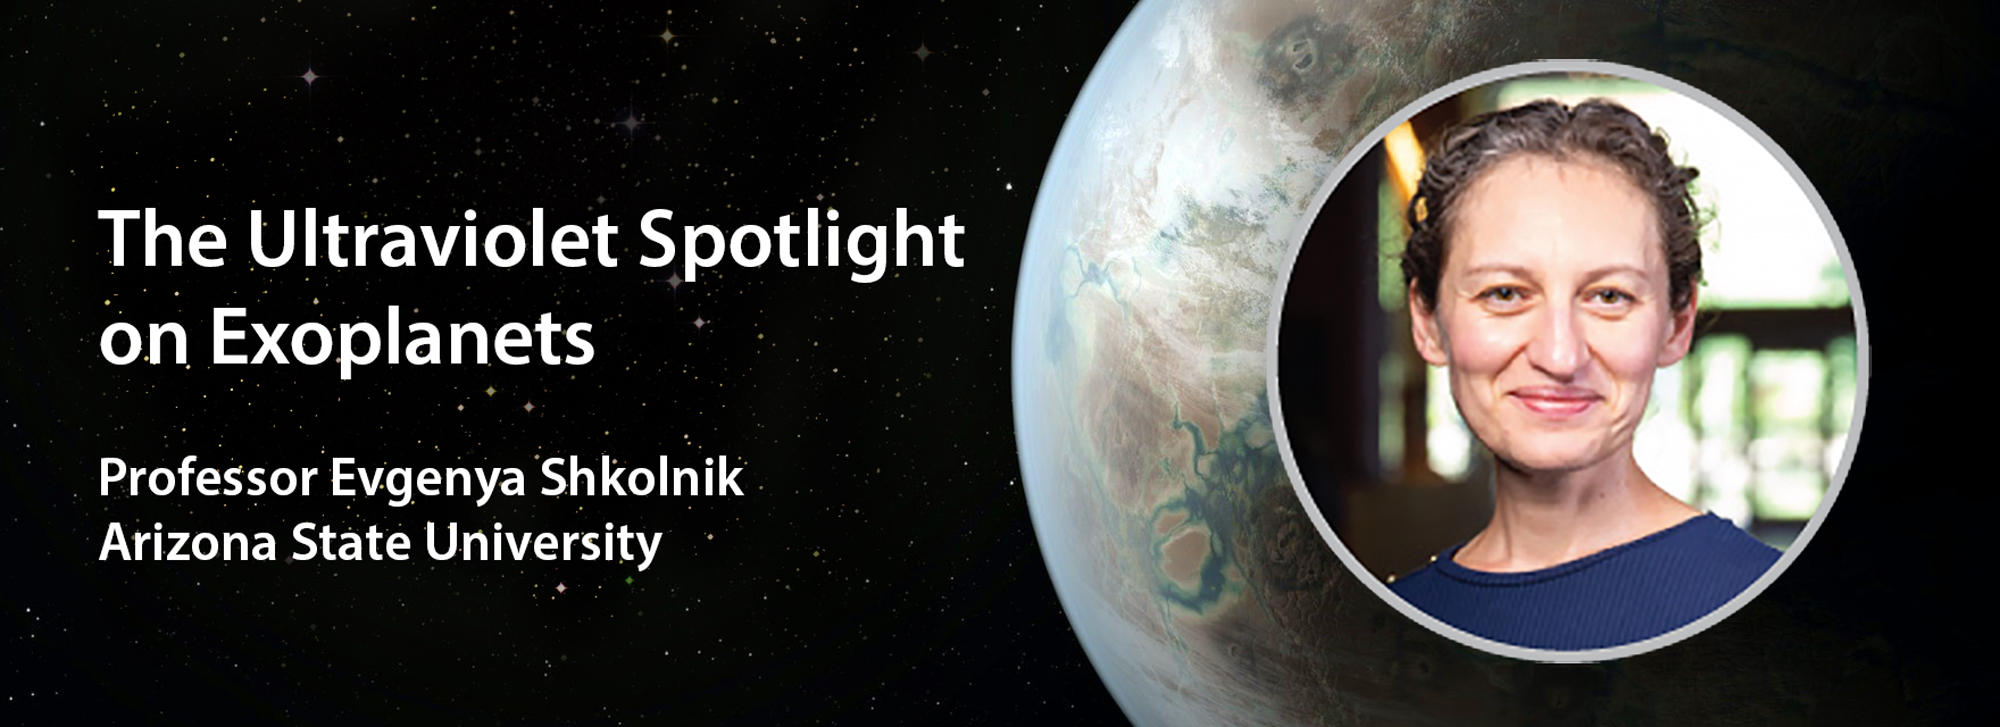 The Ultraviolet Spotlight on Exoplanets